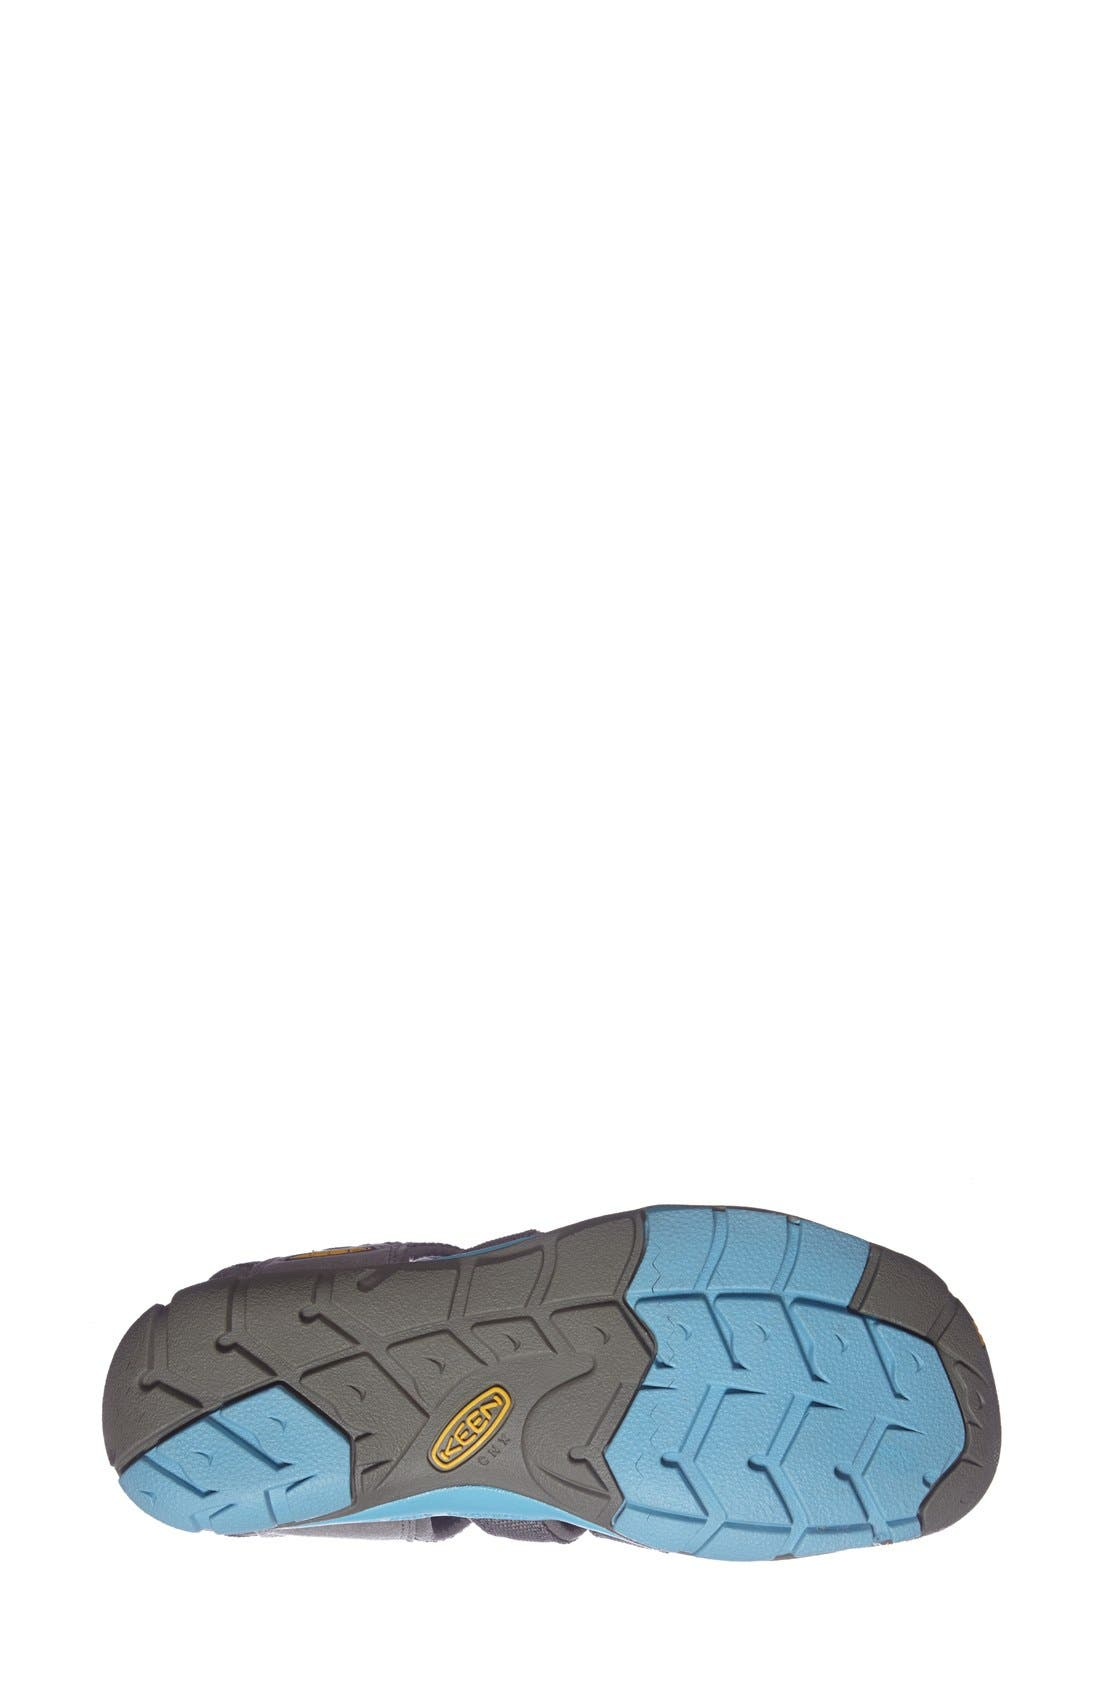 'Clearwater CNX' Sandal,                             Alternate thumbnail 4, color,                             Gargoyle/ Norse Blue